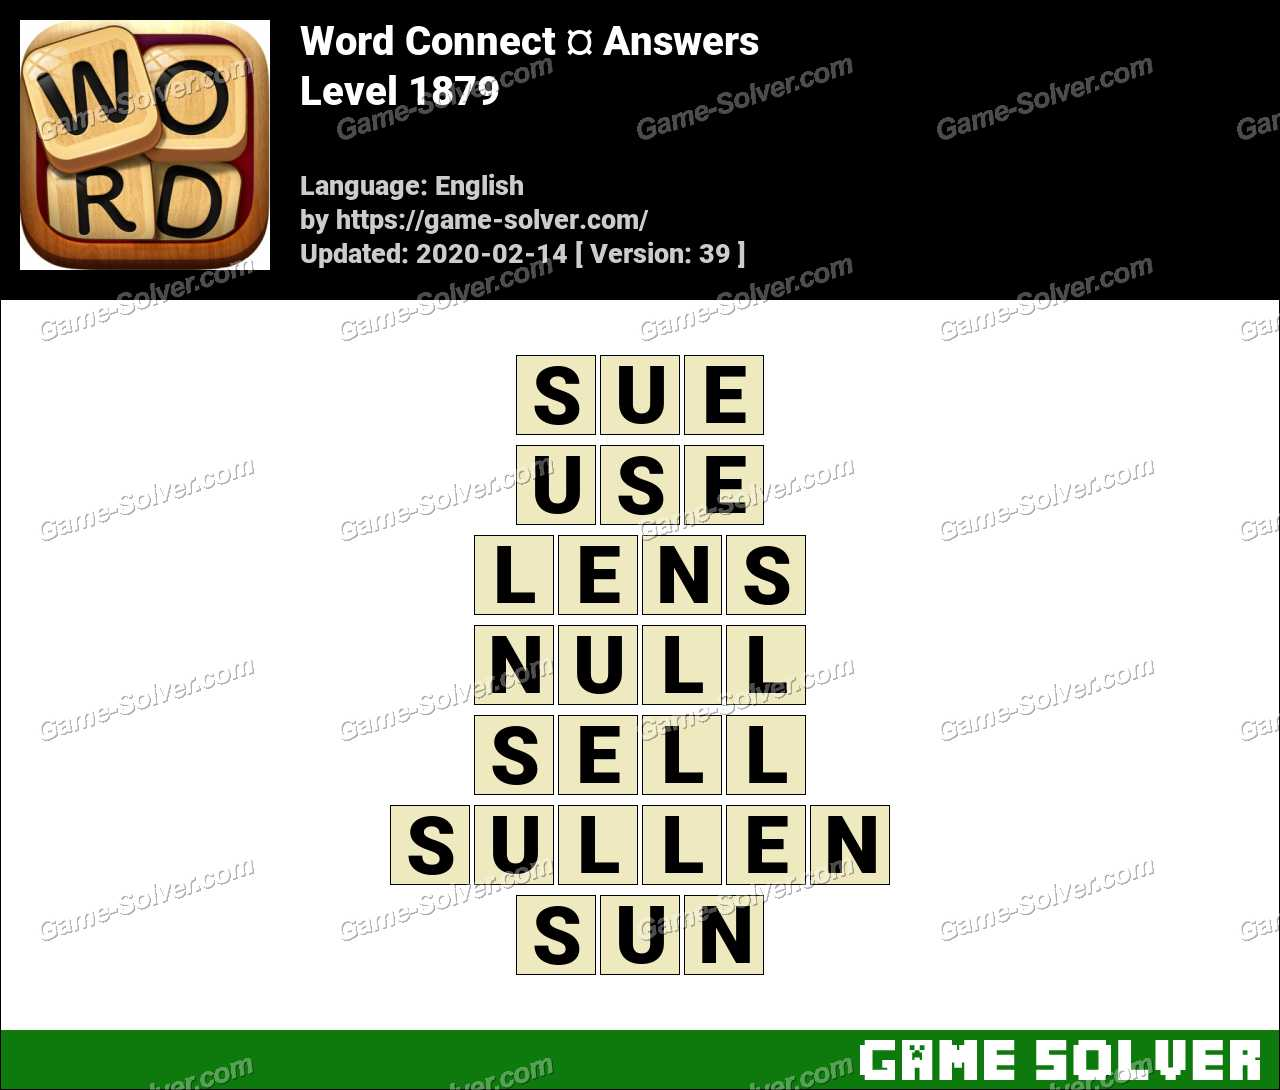 Word Connect Level 1879 Answers